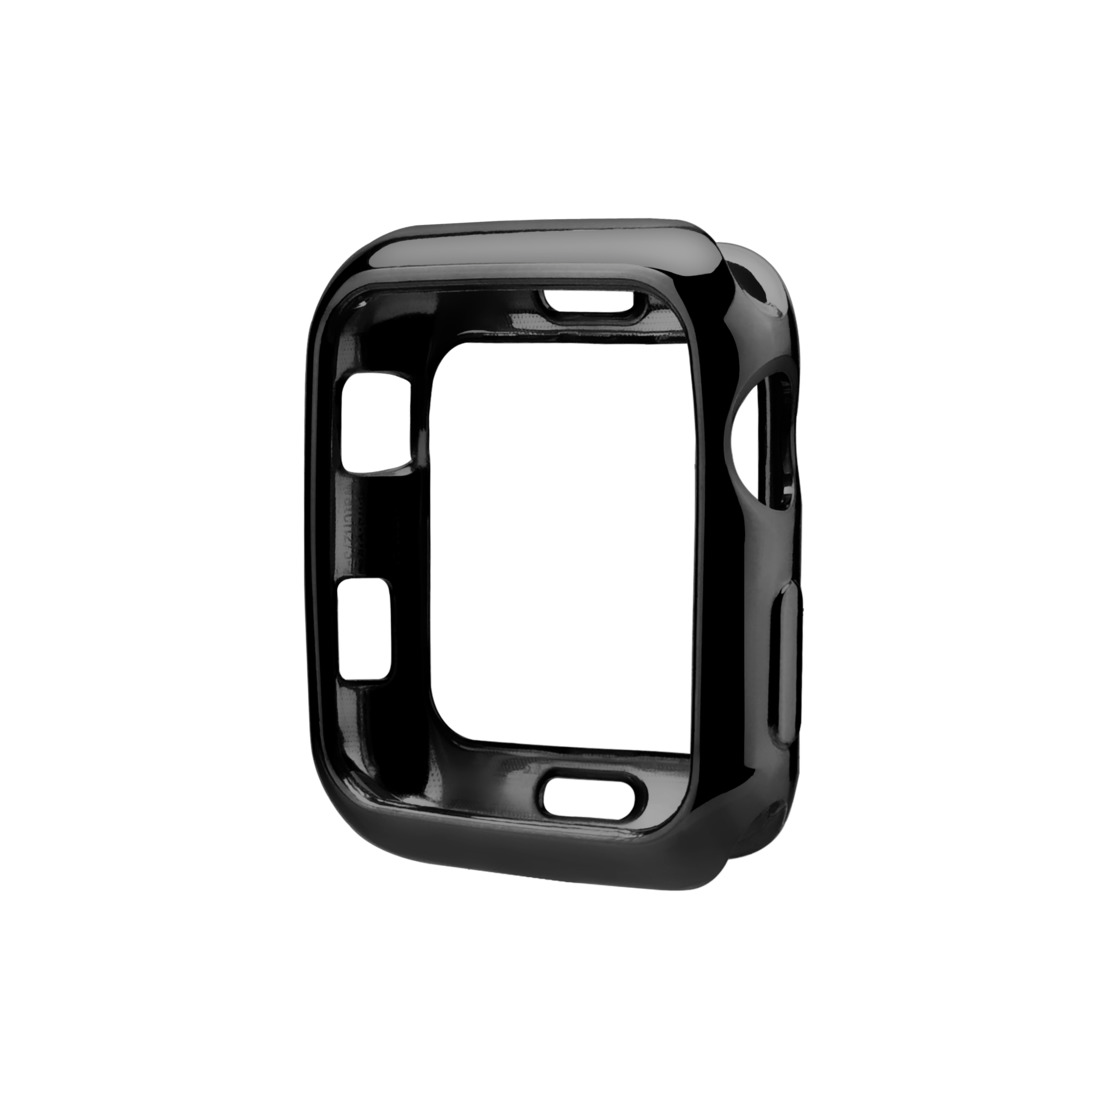 iPhone 7 Plus/7/6 Plus/6/5/5s/5c Case - Black Apple Watch Case (38mm/40mm)